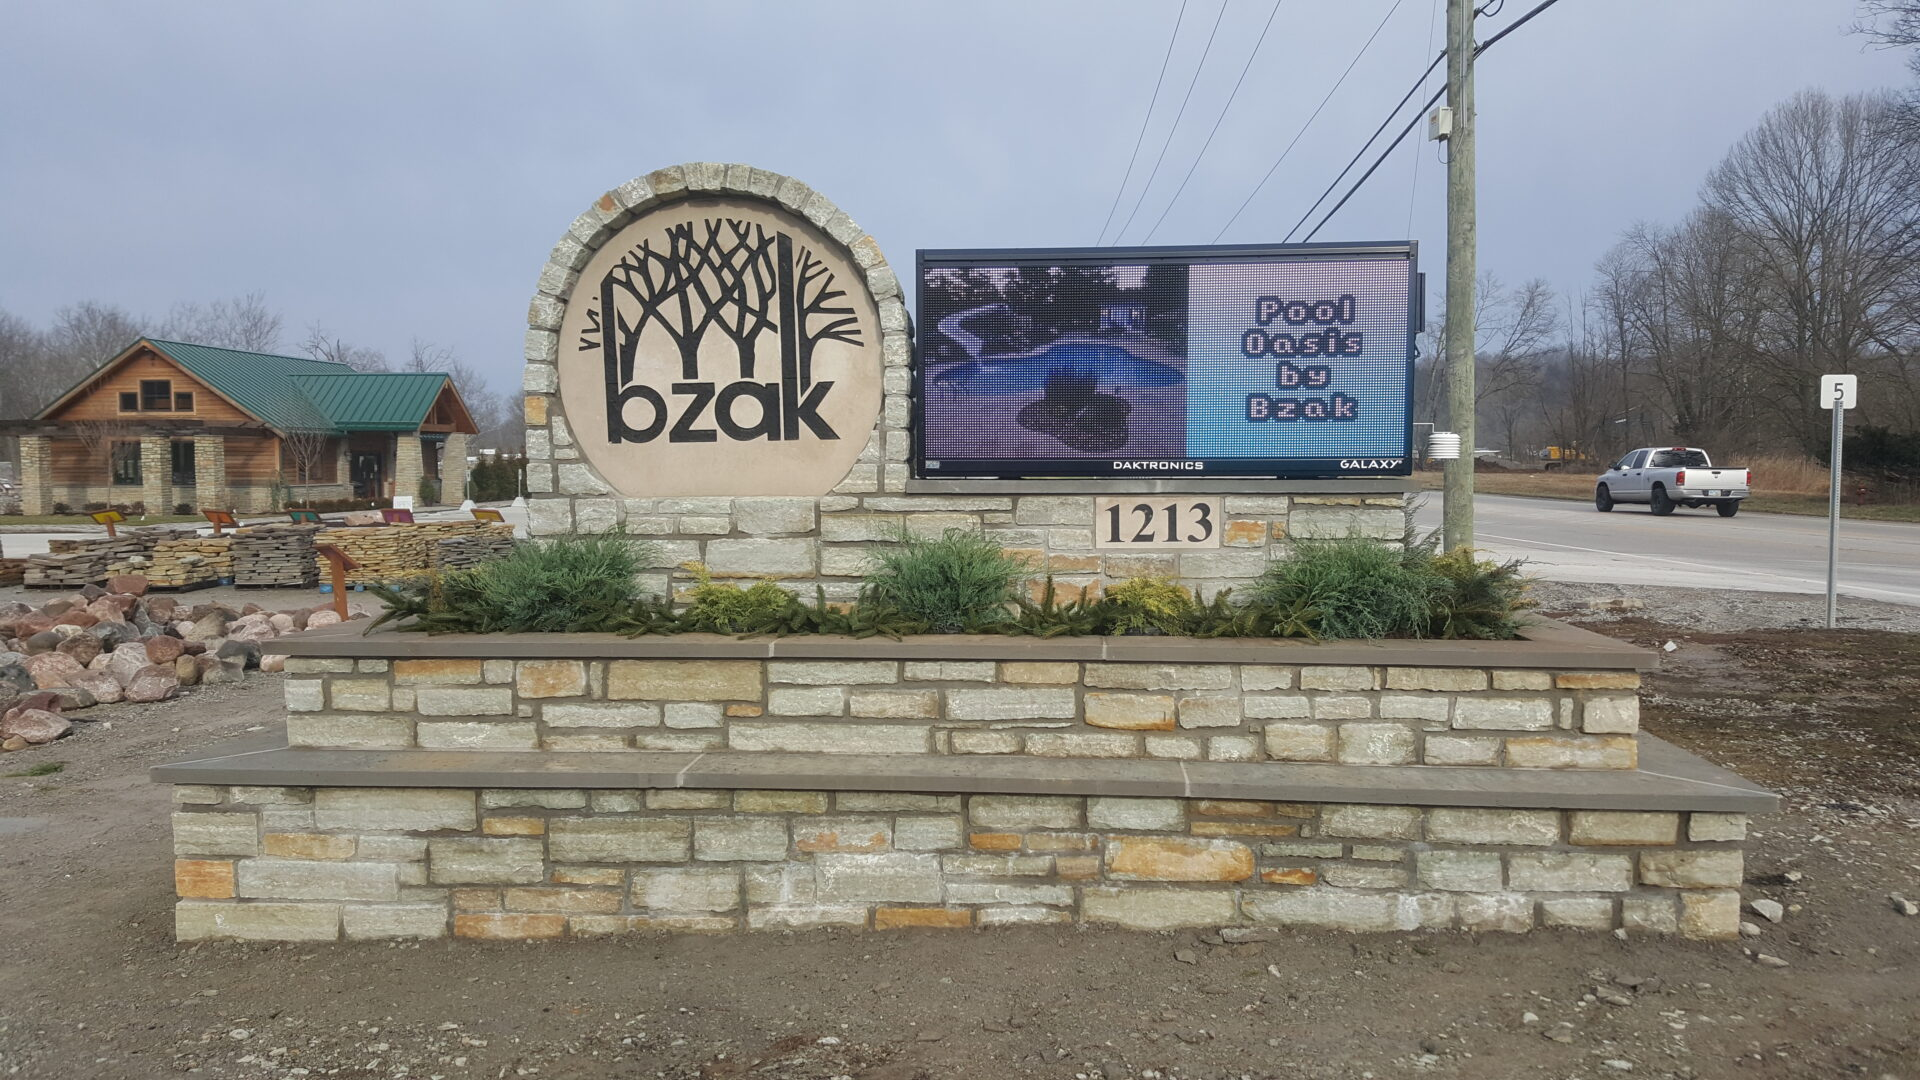 LED Message Board within a rock fabricated sign